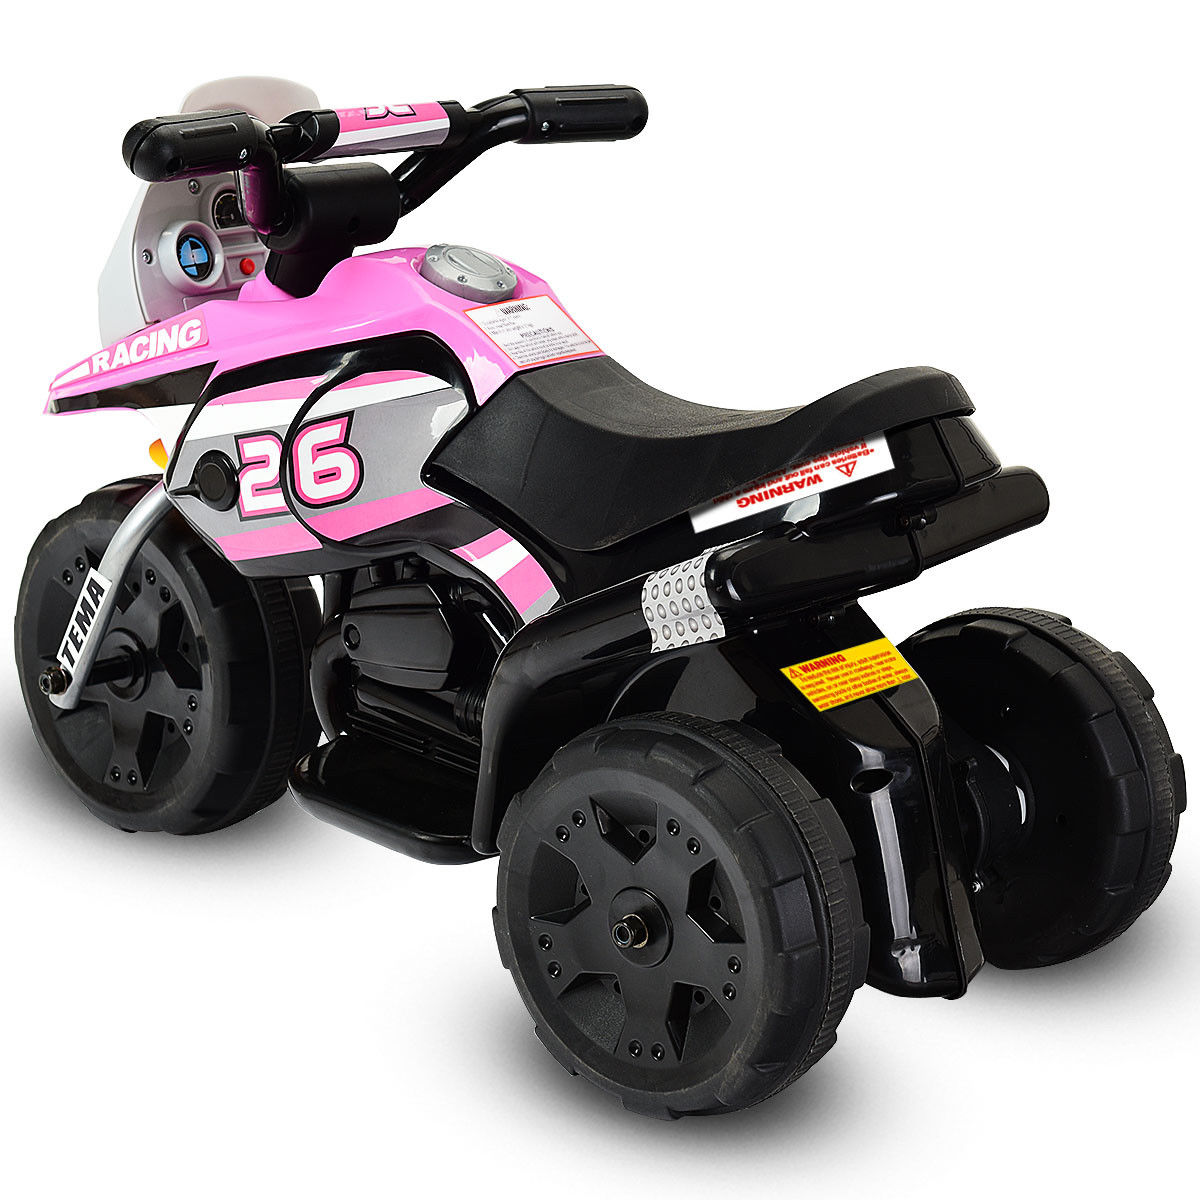 Costway: 6V Kids Ride On Motorcycle Battery Powered 3